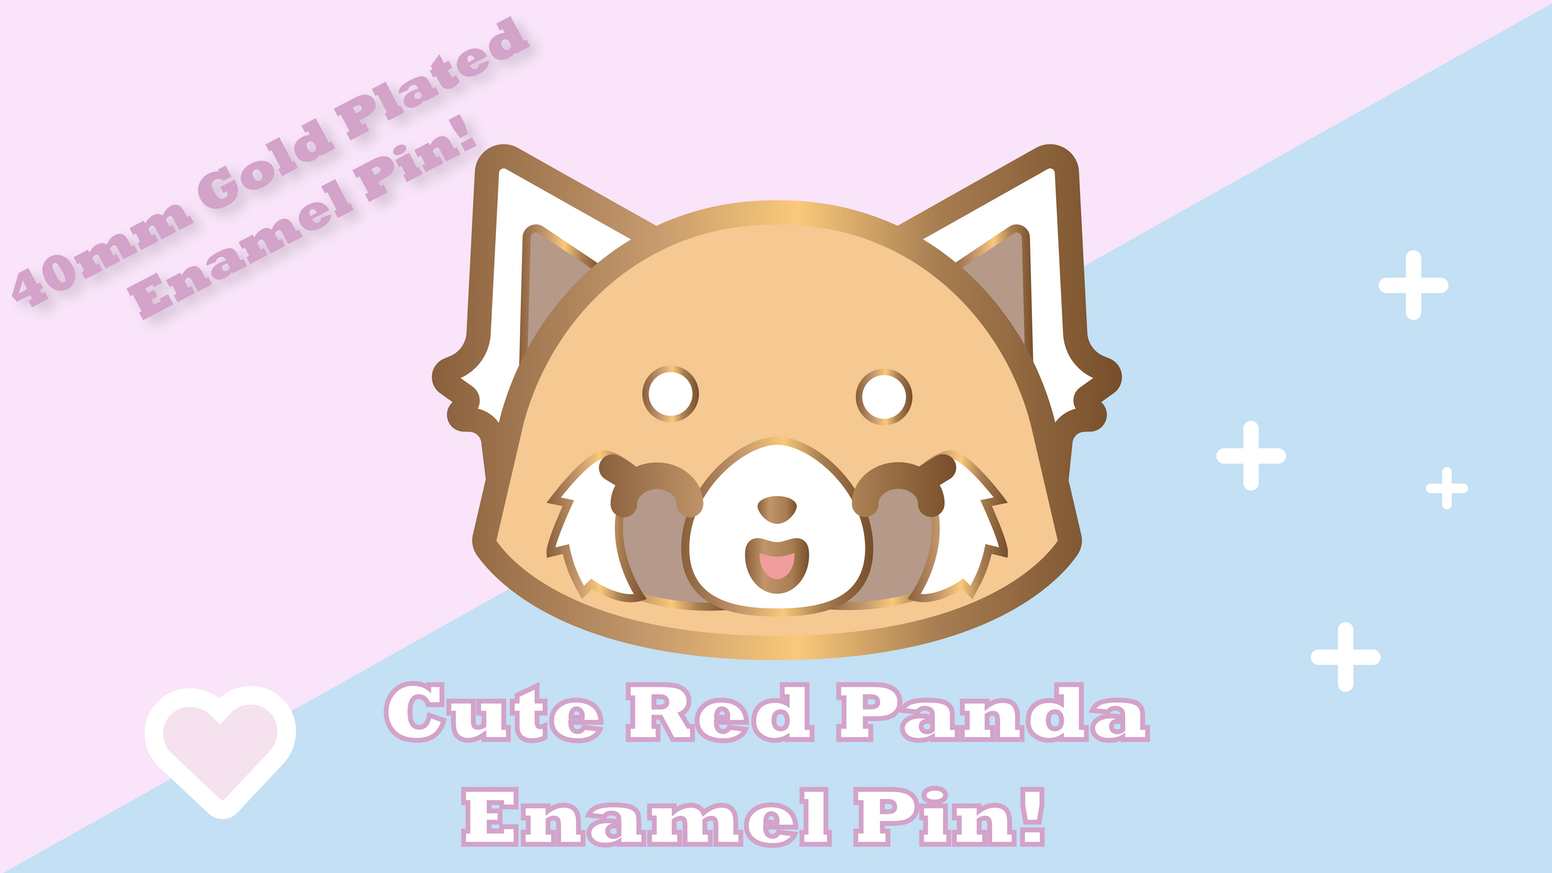 I am wanting to create a 40mm Gold Plated enamel pin of a Red Panda from a cute show we all know and love.